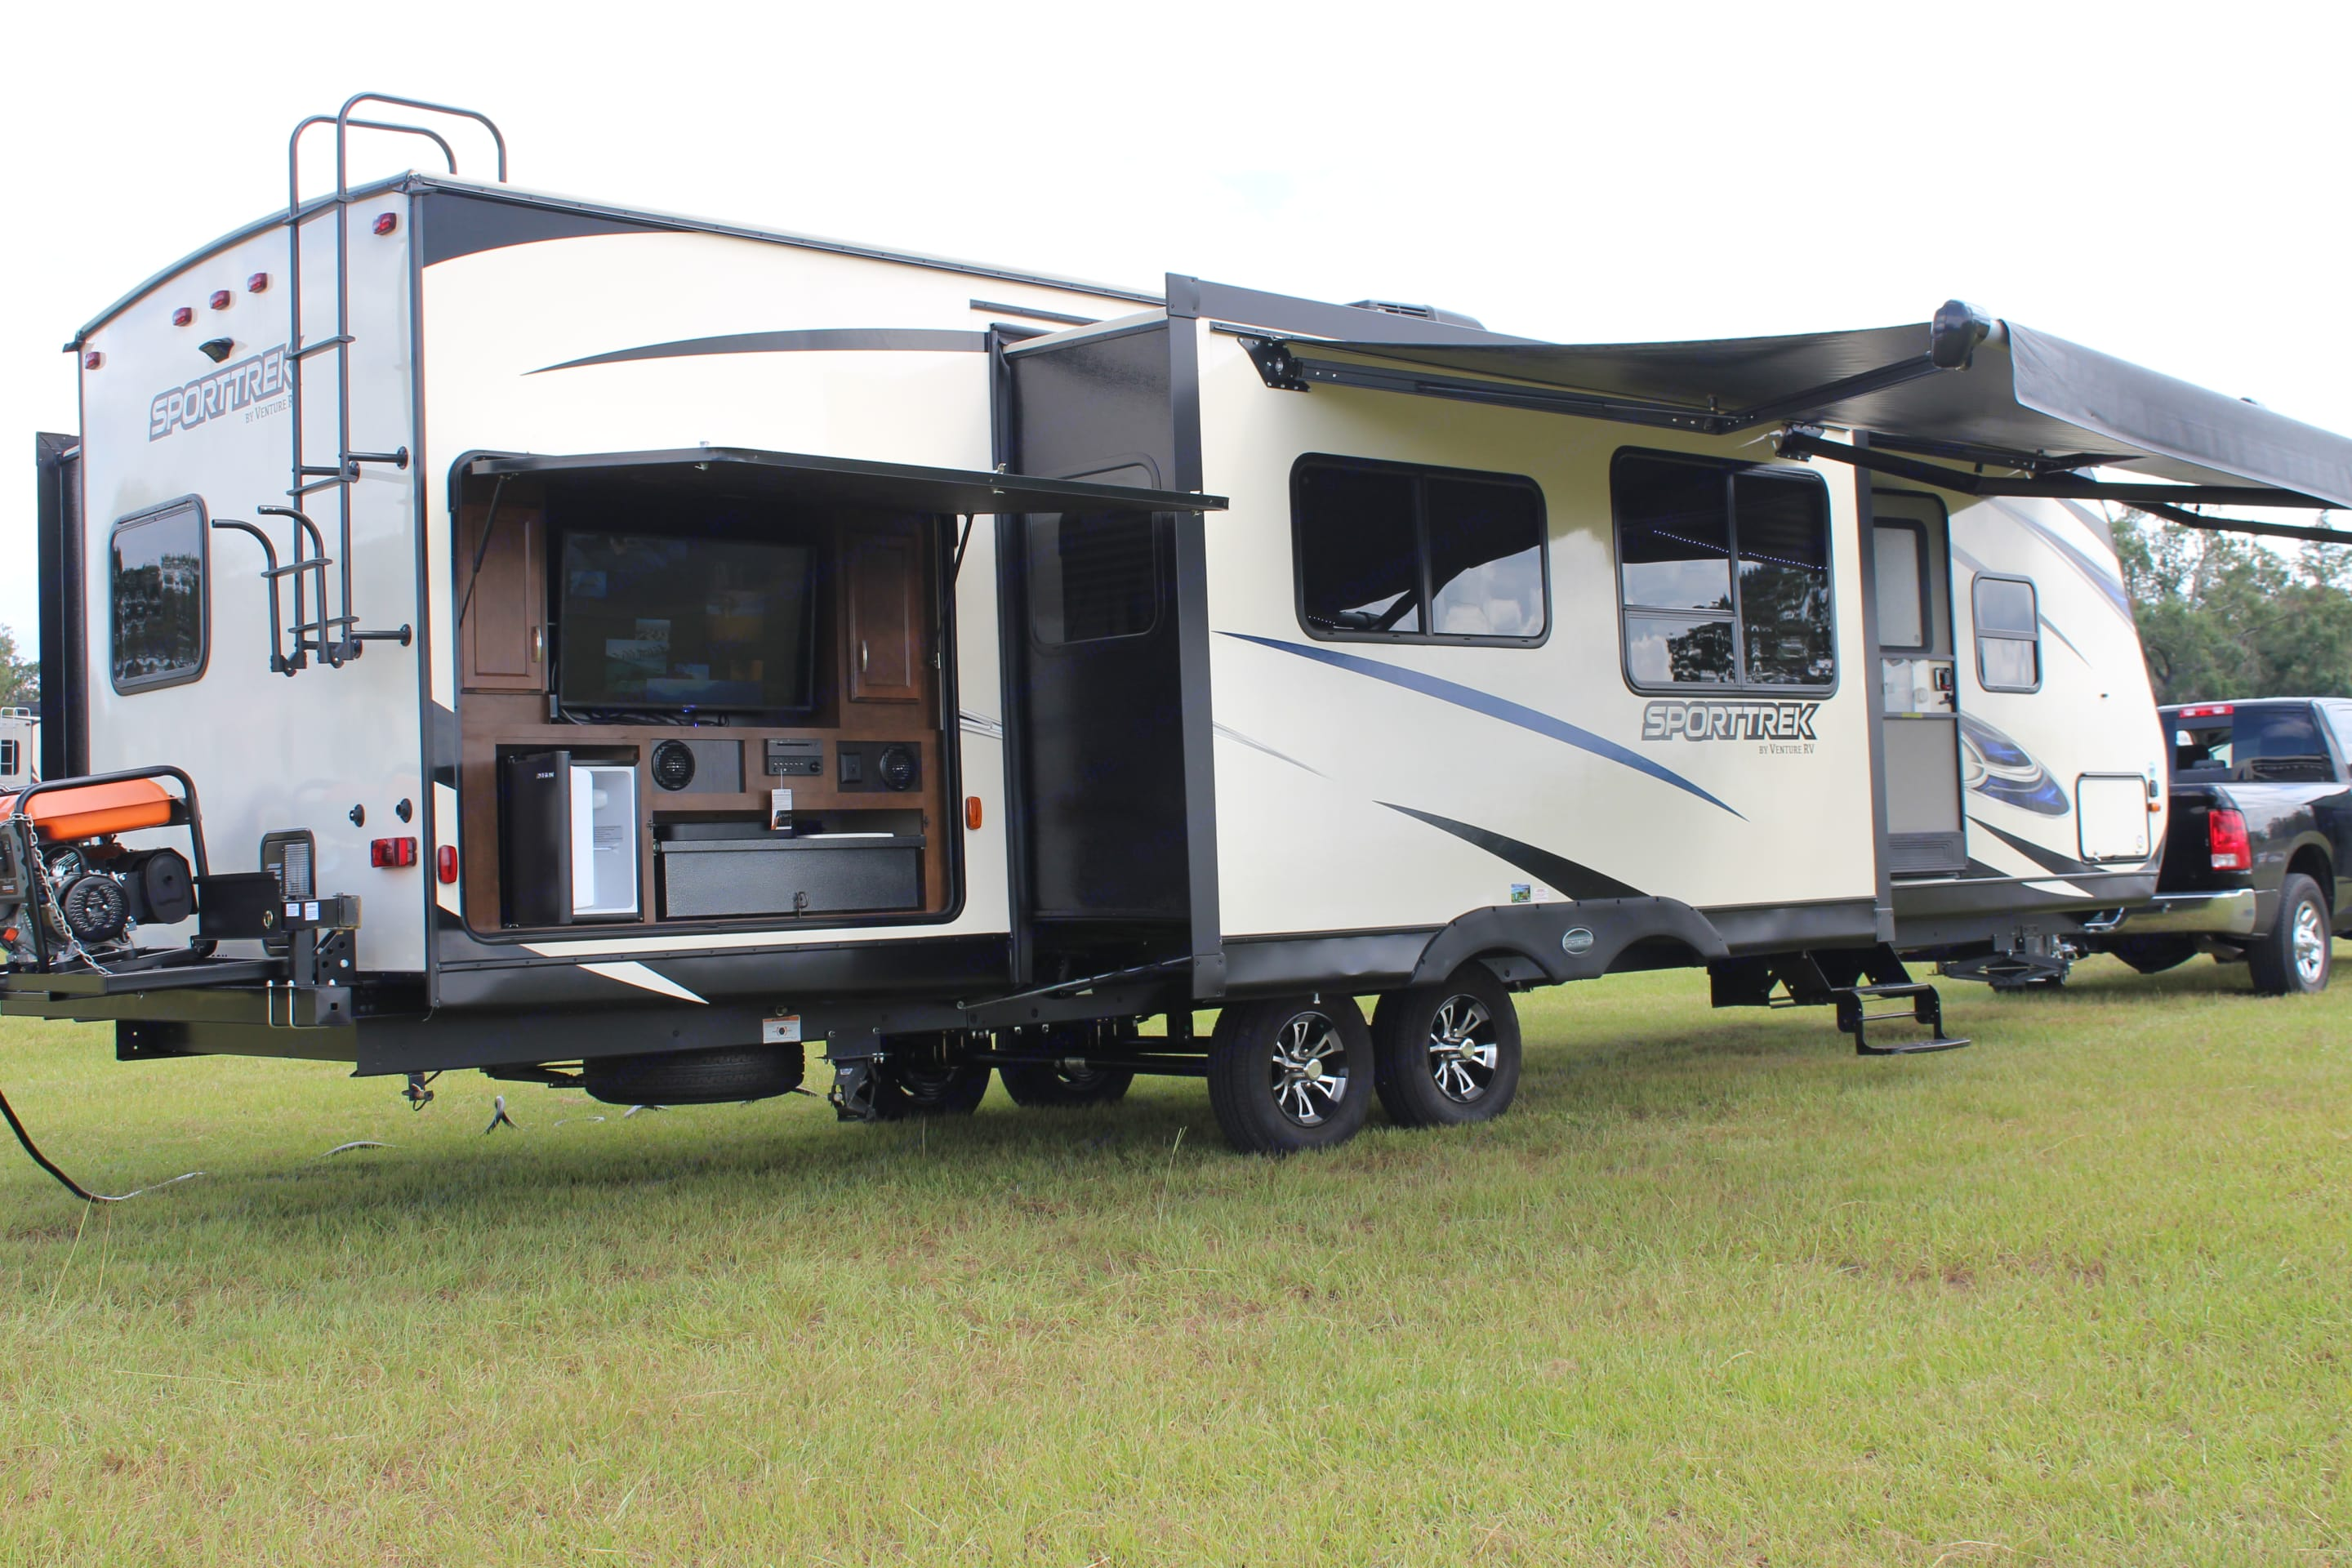 Exterior view which shoes the outdoor kitchen/entertainment area. The outdoor kitchen area is equipped with a large TV, two burner stove, sink, refrigerator, and storage.. Venture Rv Sporttrek 2018